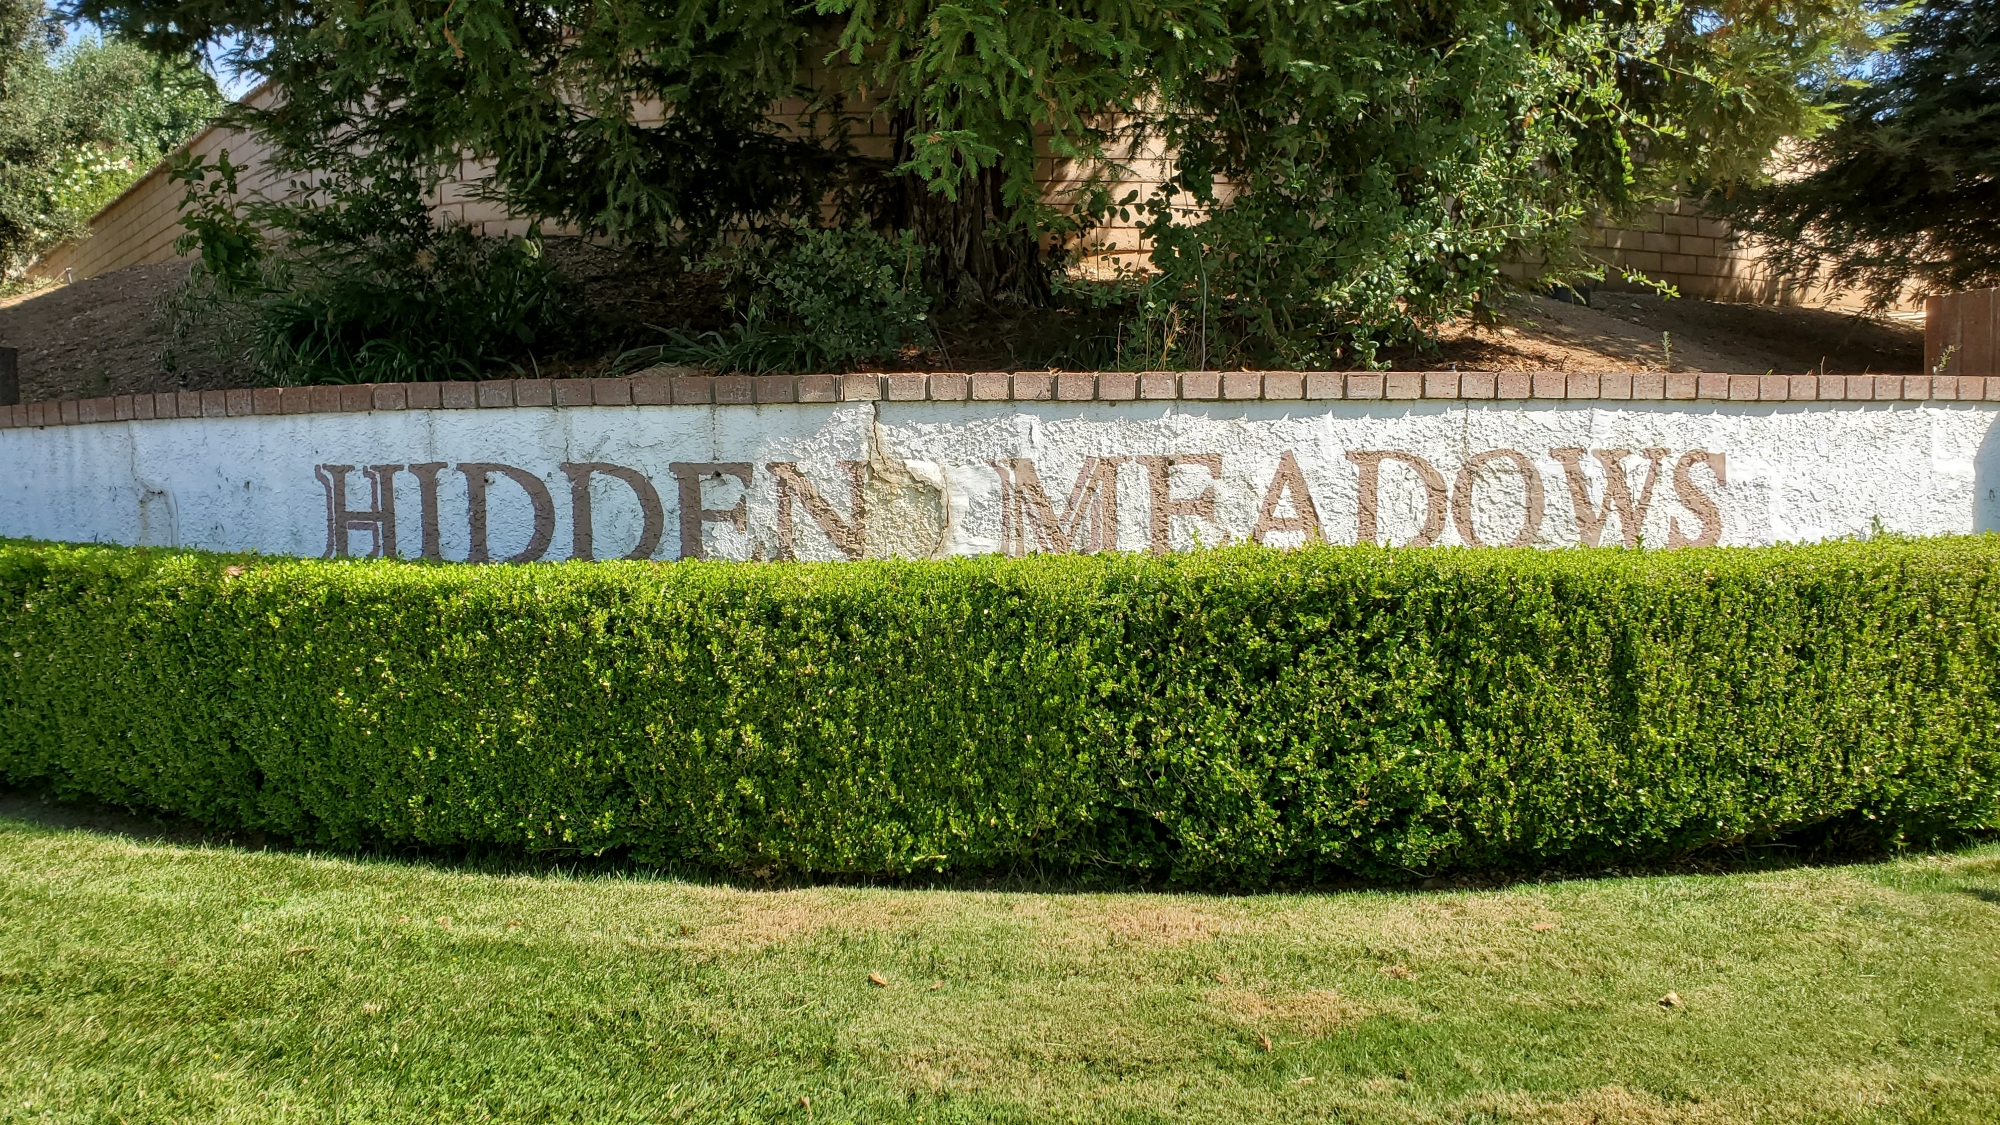 Hidden Meadows Community